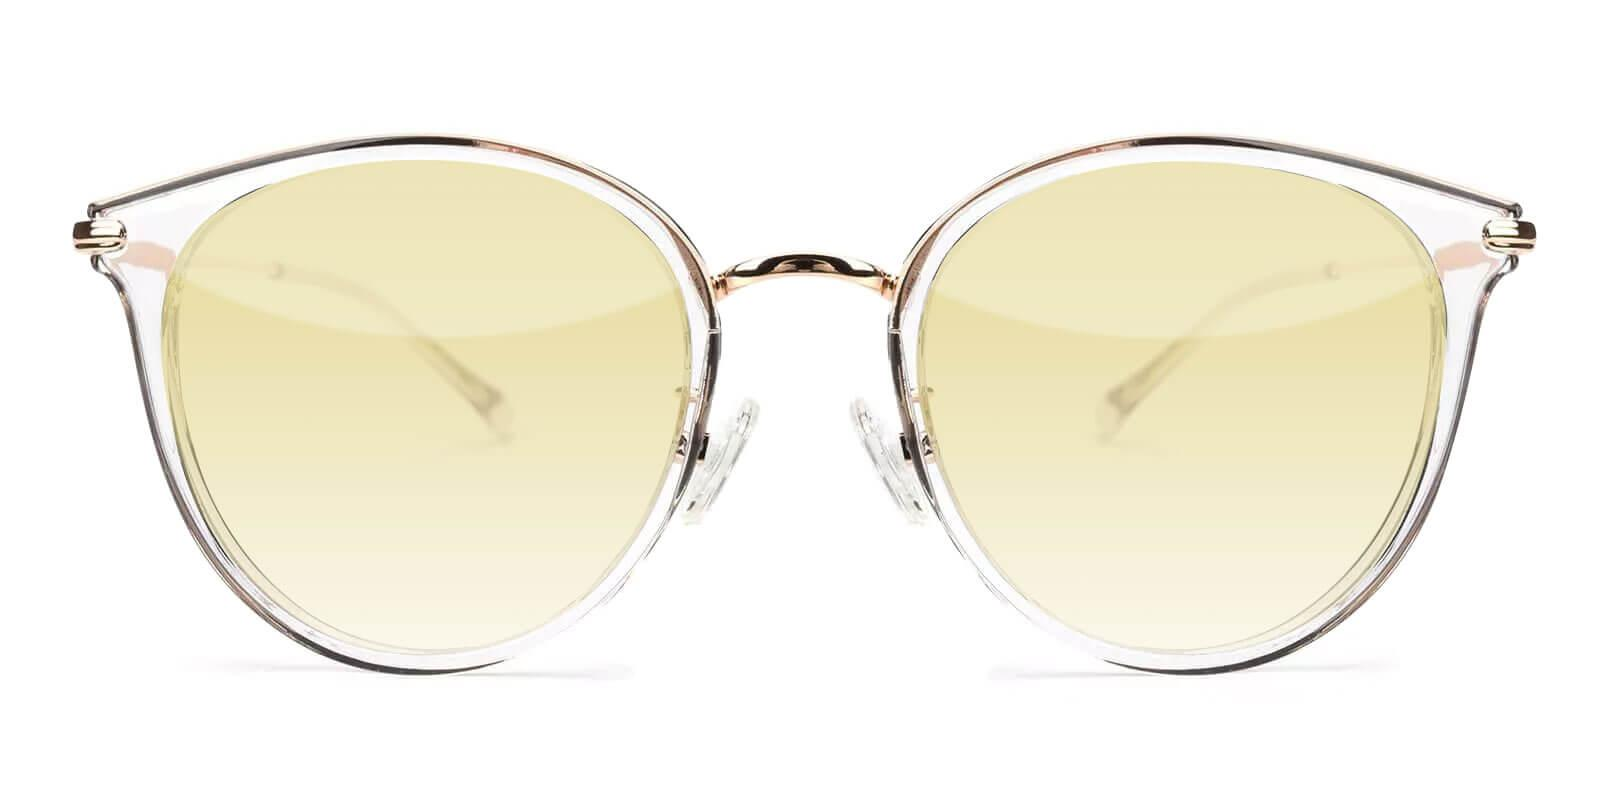 Fan Translucent TR NosePads , Sunglasses Frames from ABBE Glasses